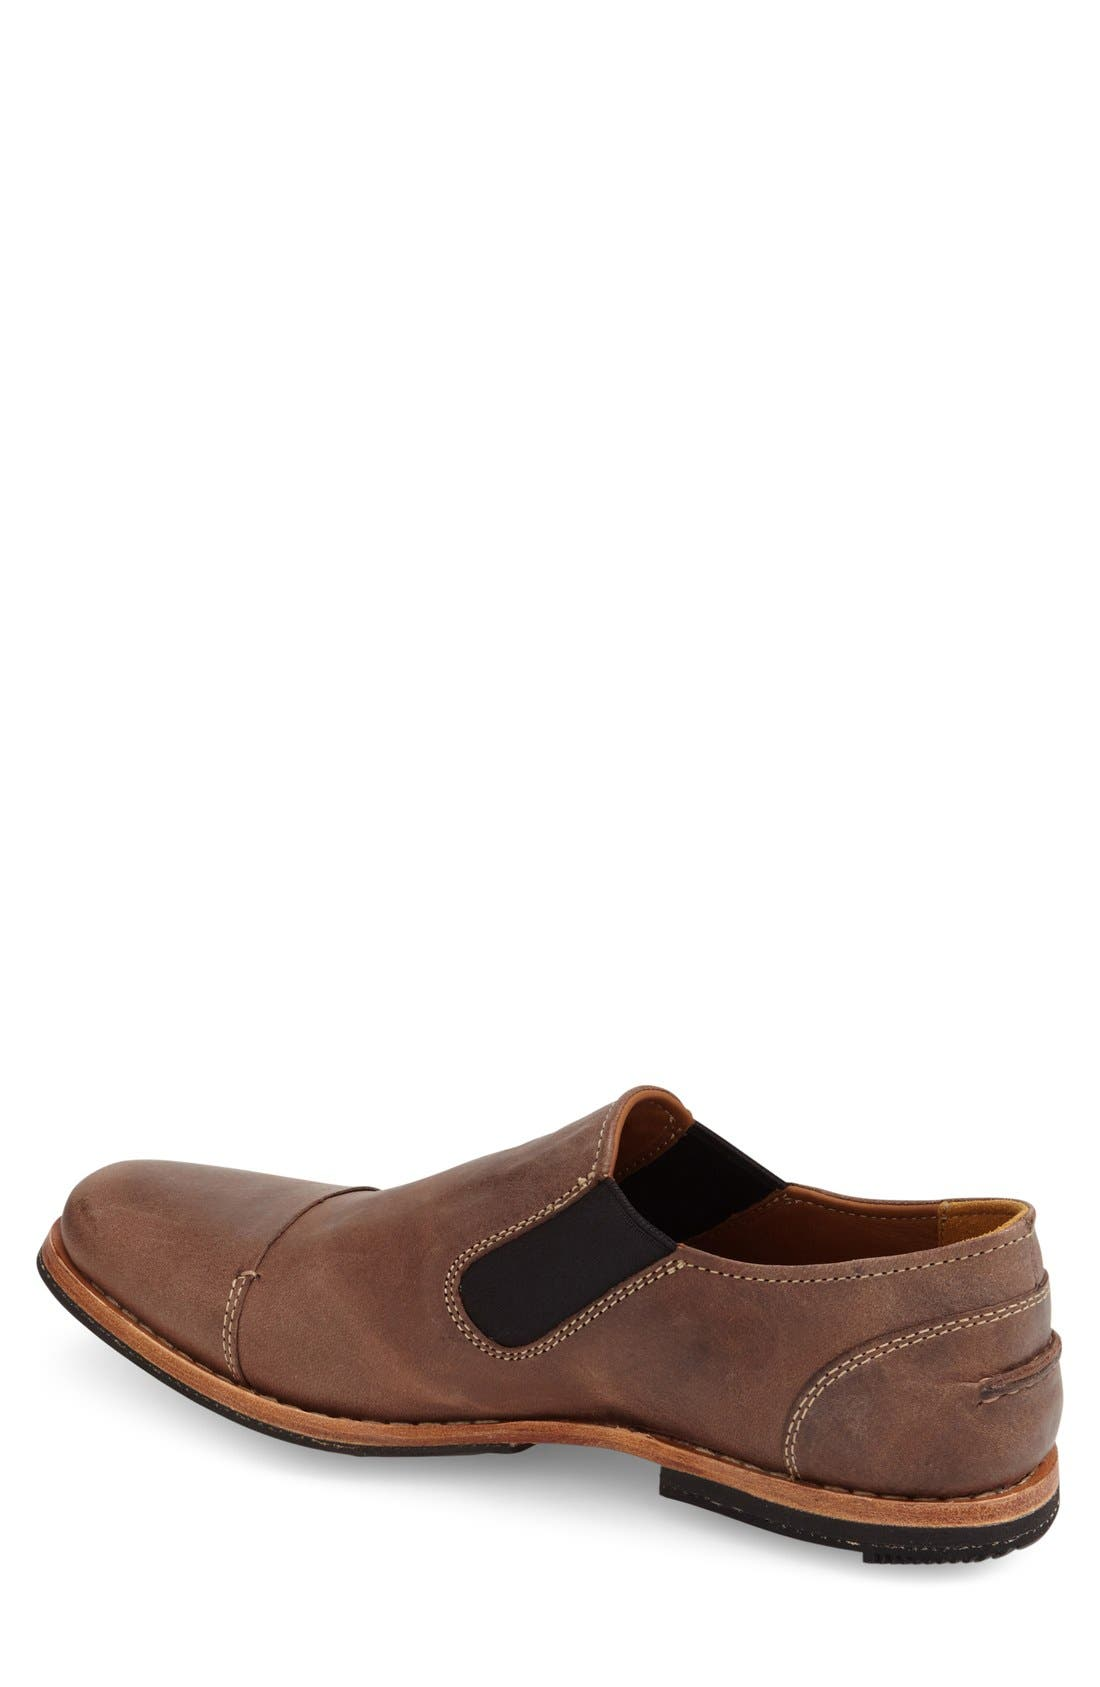 'Lost History' Venetian Loafer,                             Alternate thumbnail 4, color,